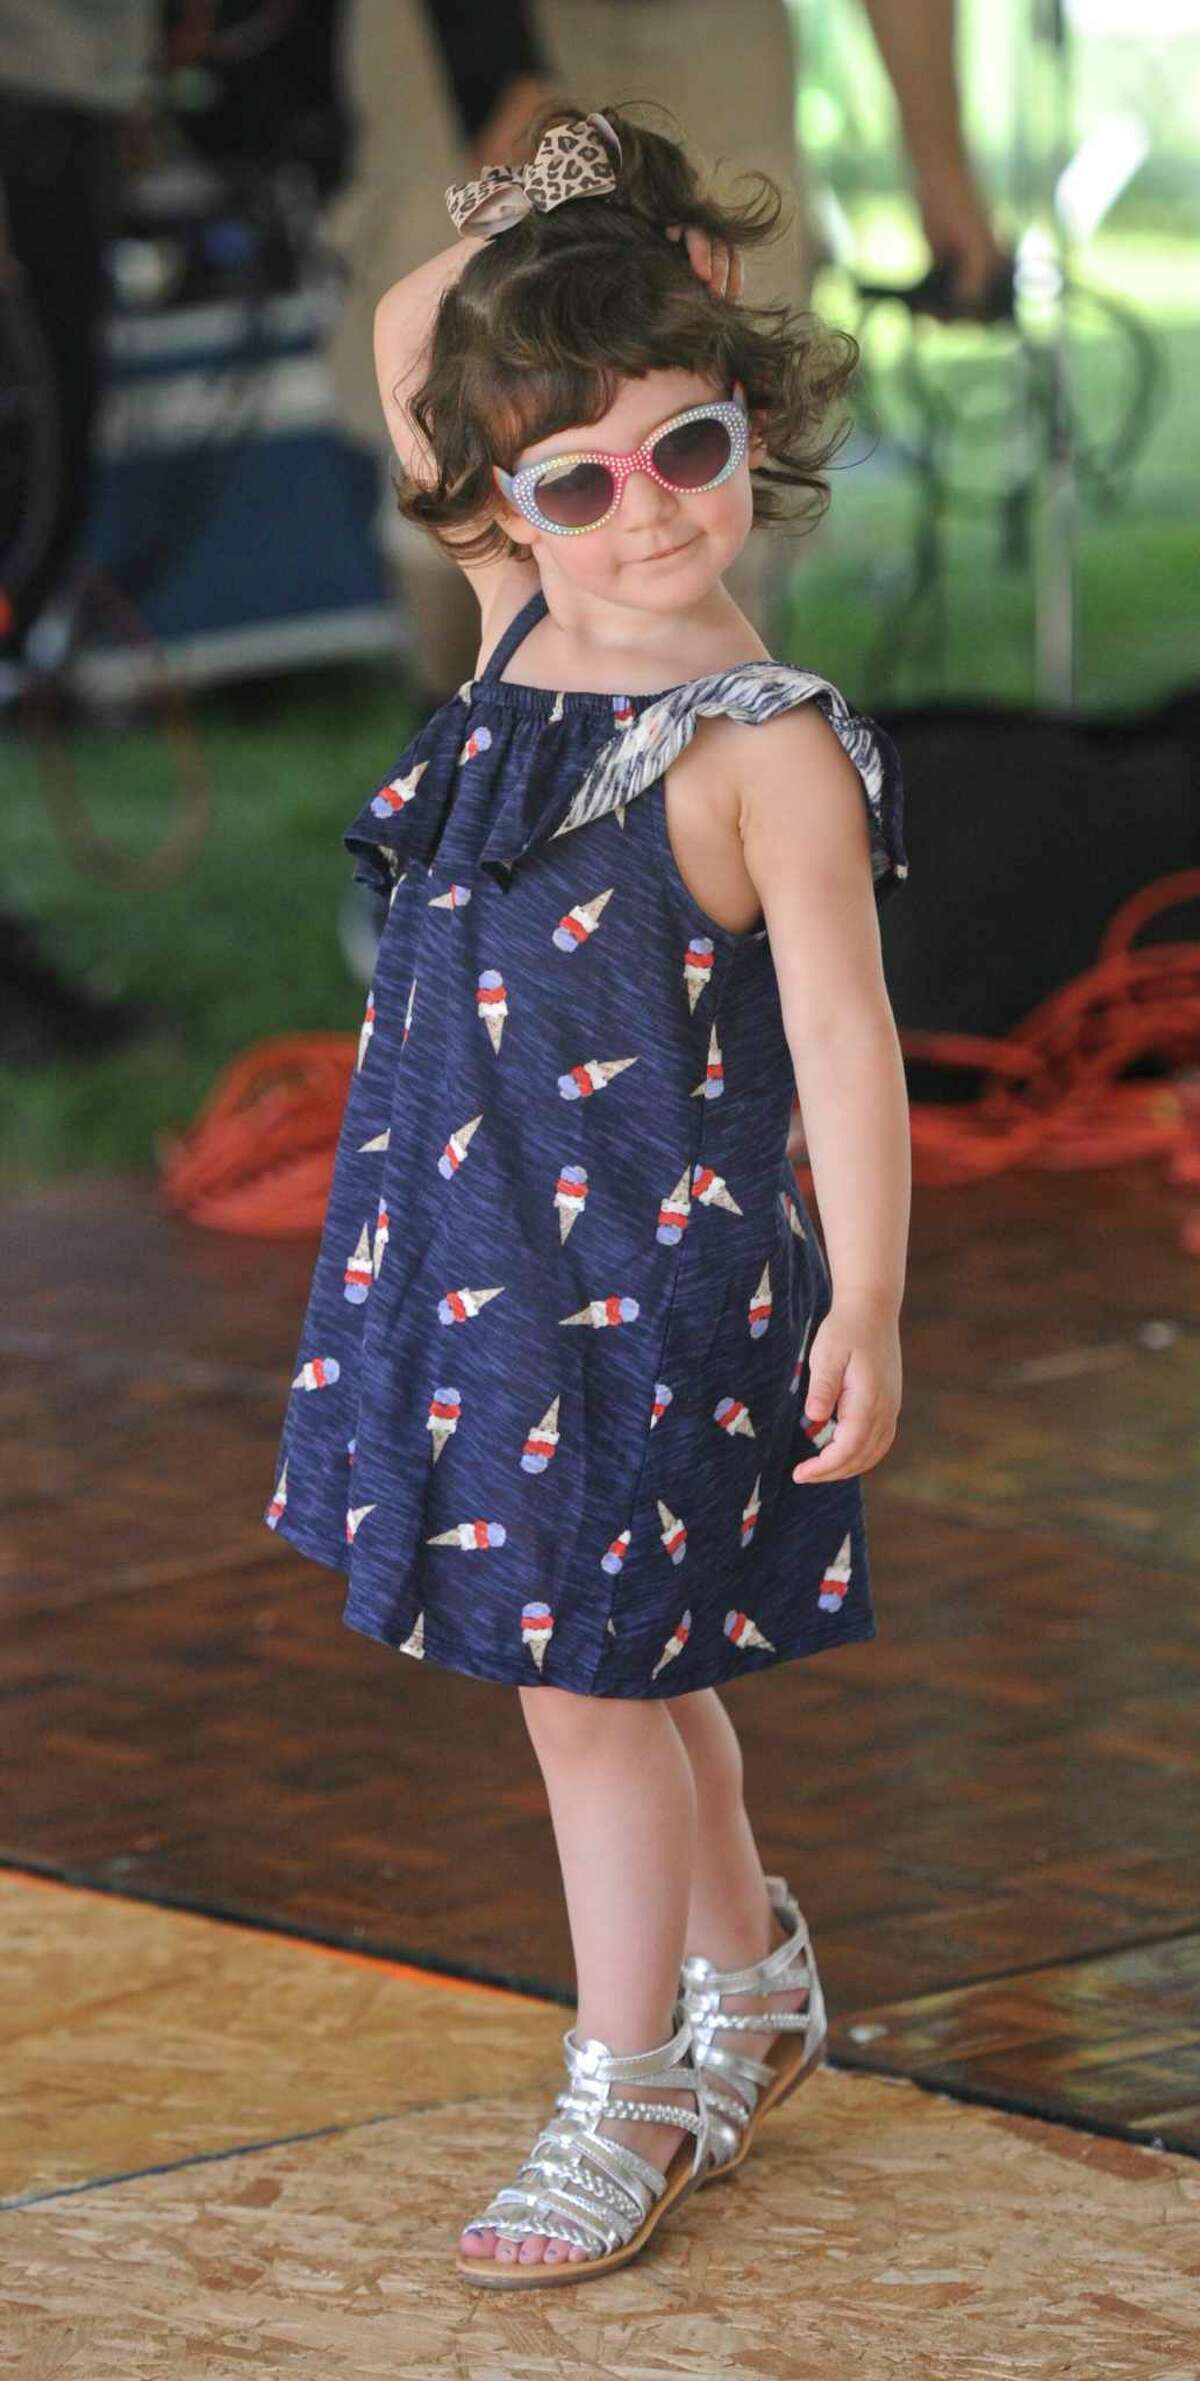 Victoria LoGuidice, 2, dances to the music at the annual Italian Festival at the Amerigo Vespucci Lodge on Christopher Columbus Avenue on Saturday, August 5, 2017, in Danbury, Conn. The festival continues on Sunday from 1 to 9 p.m.